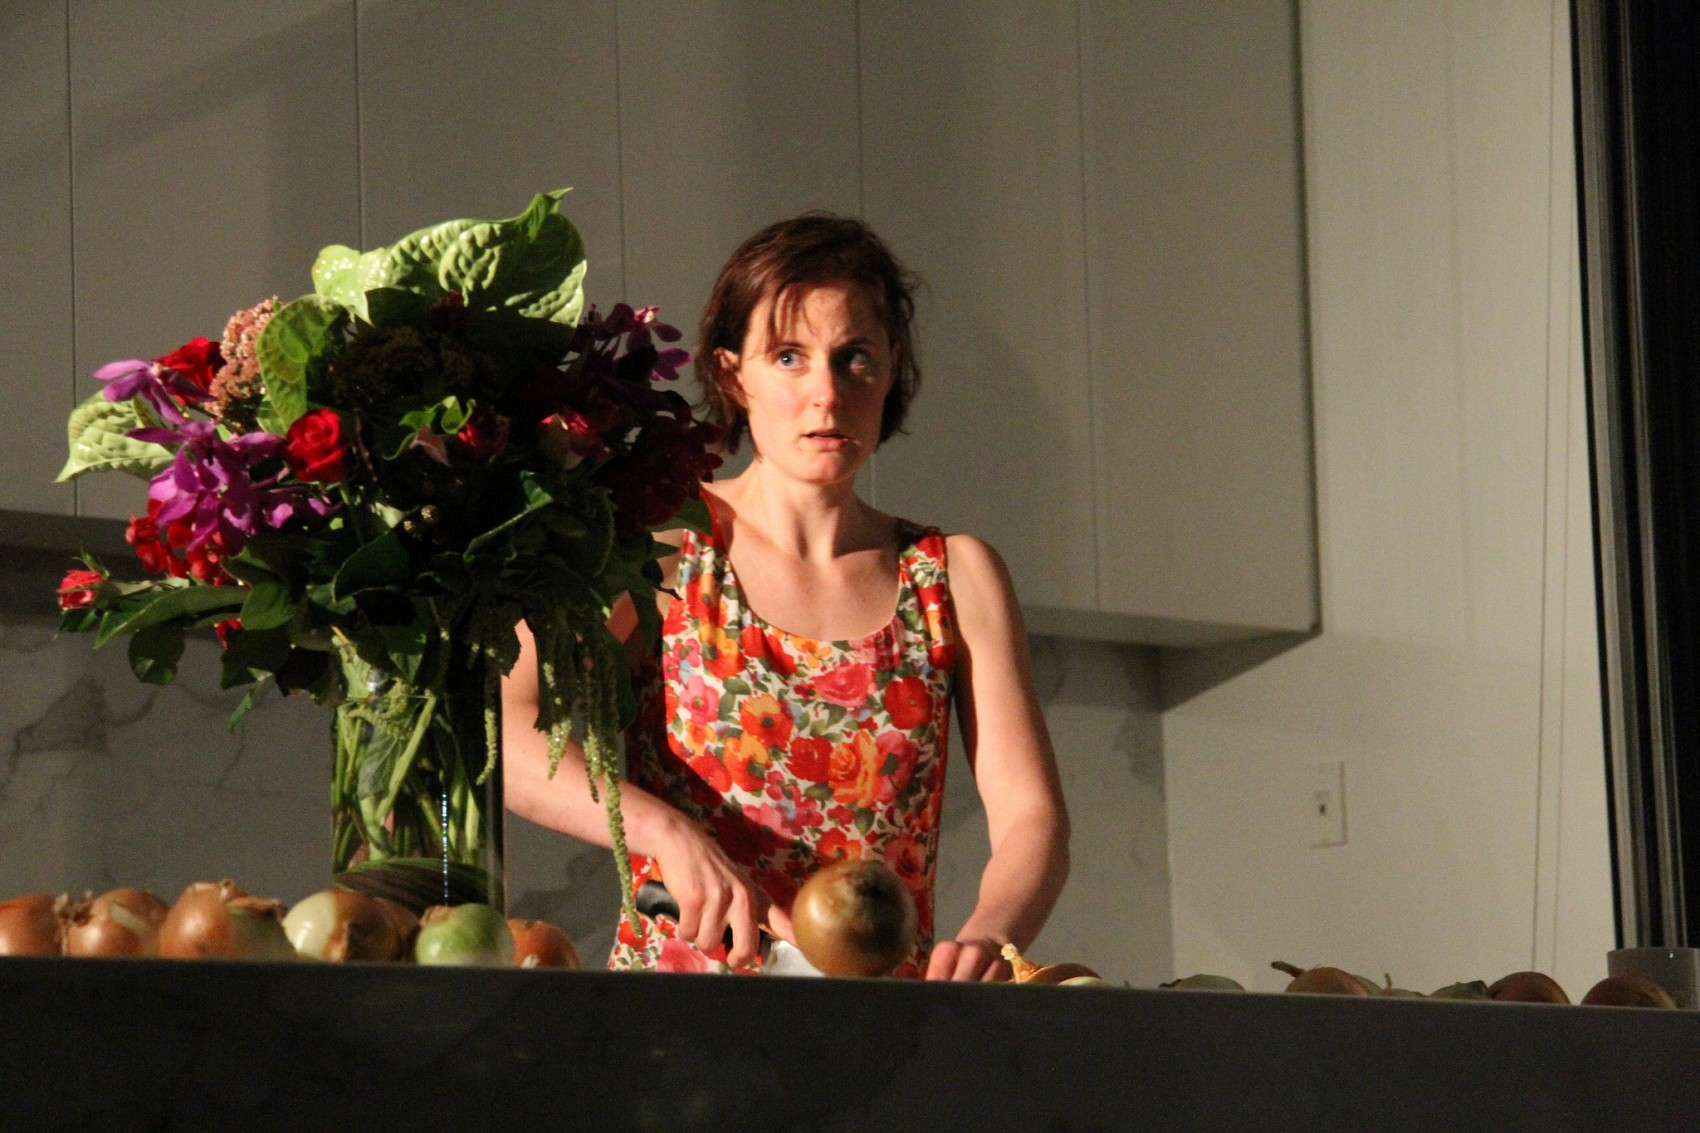 Shot from below of a woman chopping onions at a kitchen bench next to a vase of flowers